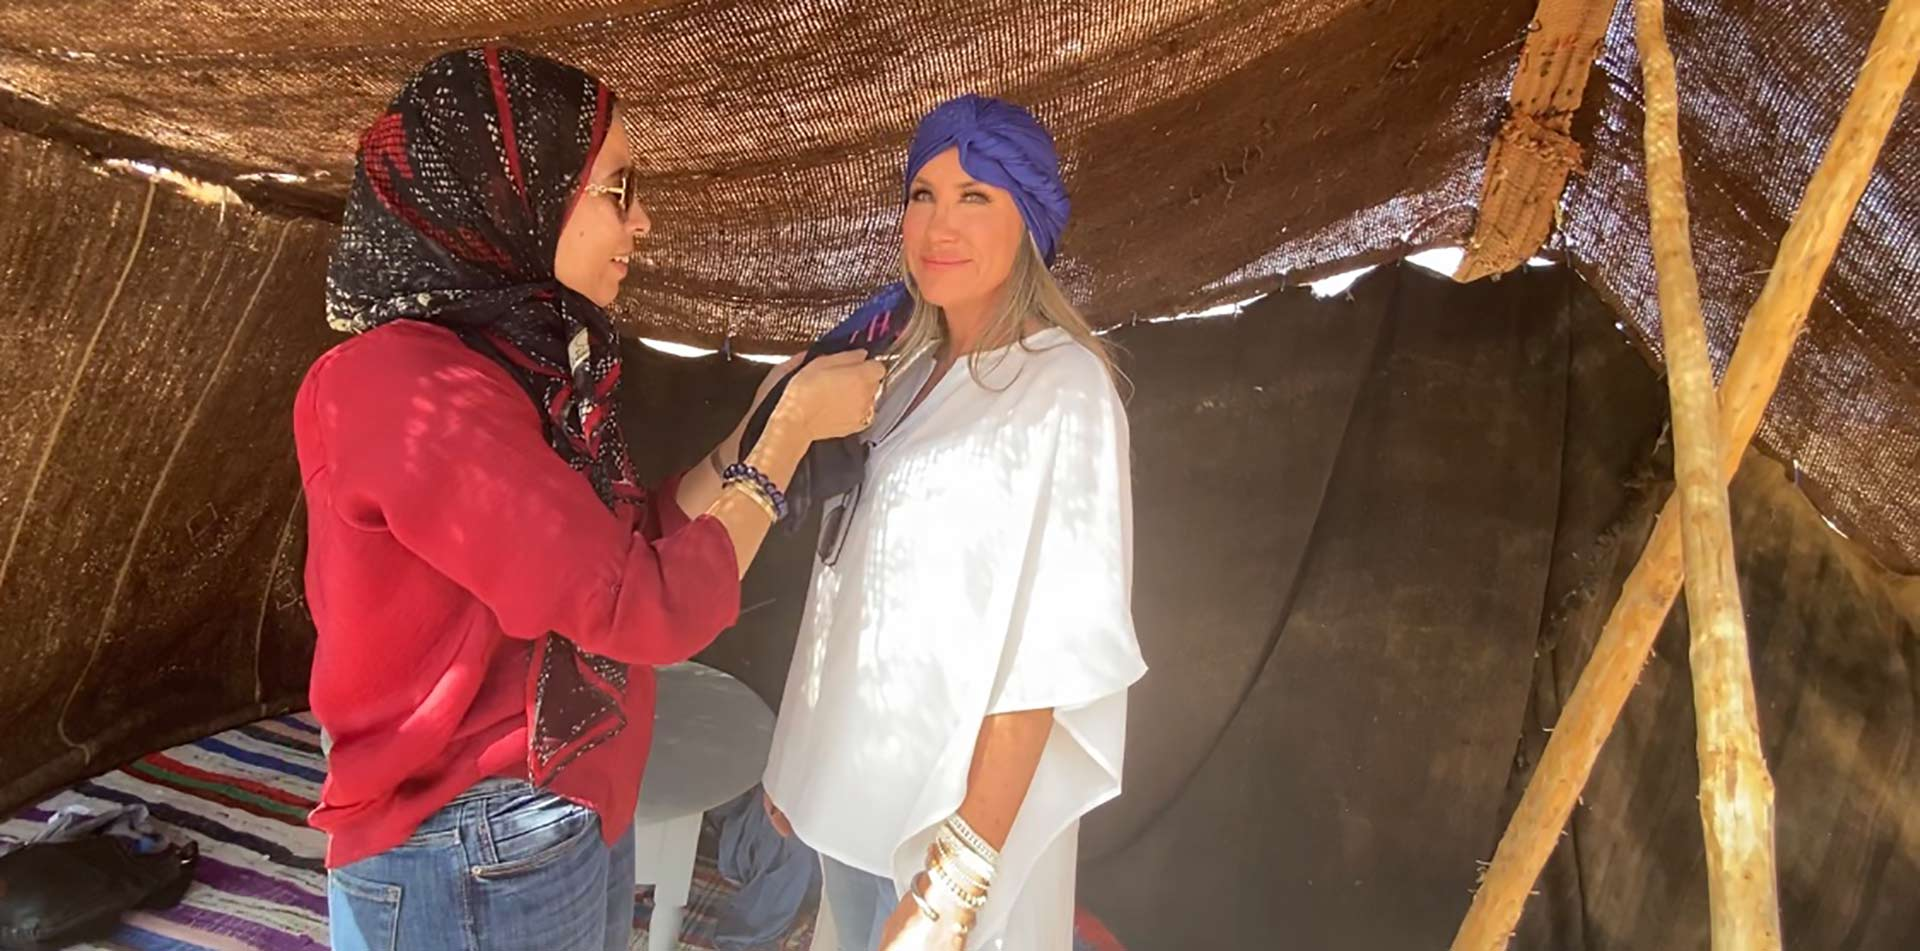 Africa Morocco Agafay Village women smiling wearing and tying head scarves in desert tent- luxury vacation destinations